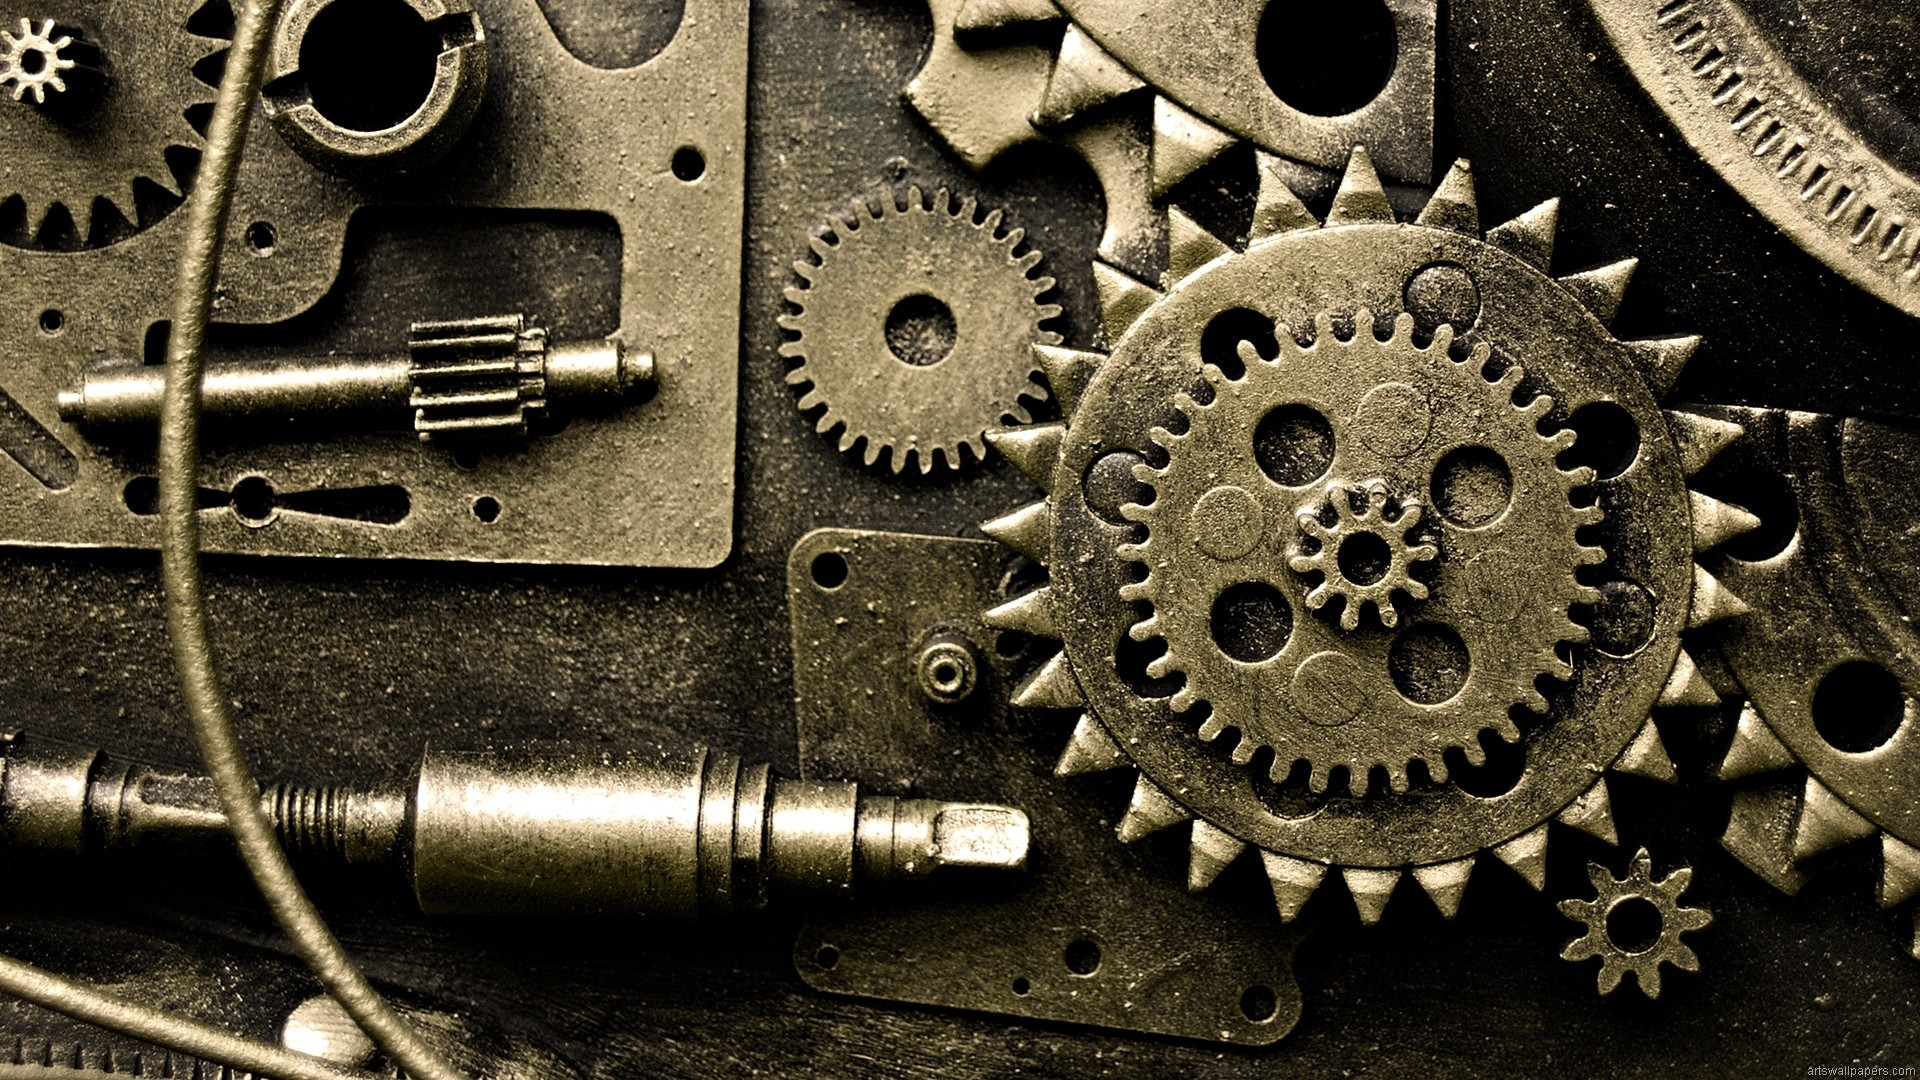 bronze-clockwork-gears-machinery-metal-2866448-1920x1080